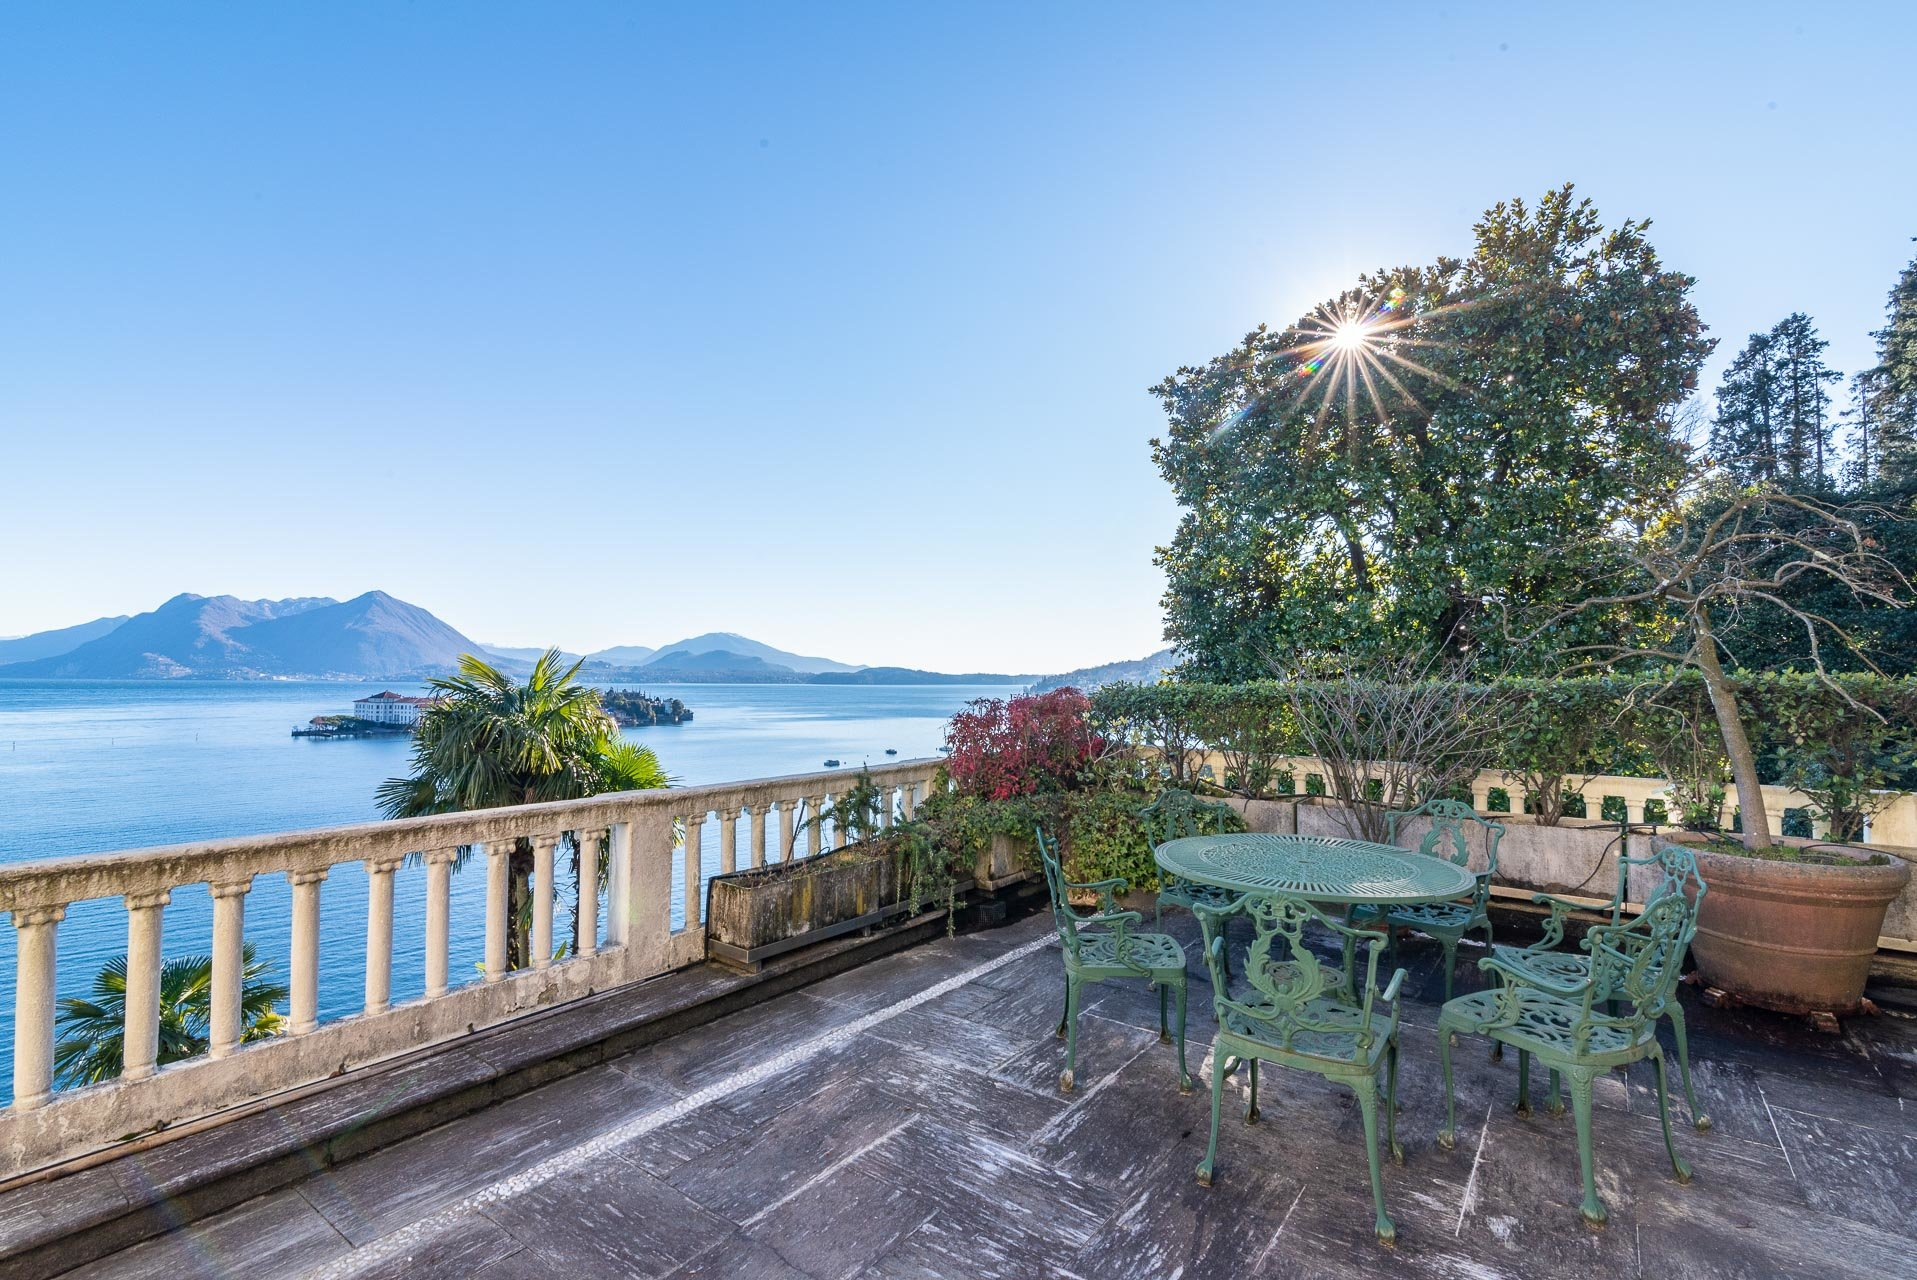 Lake view apartment for sell in Baveno - lake view terrace